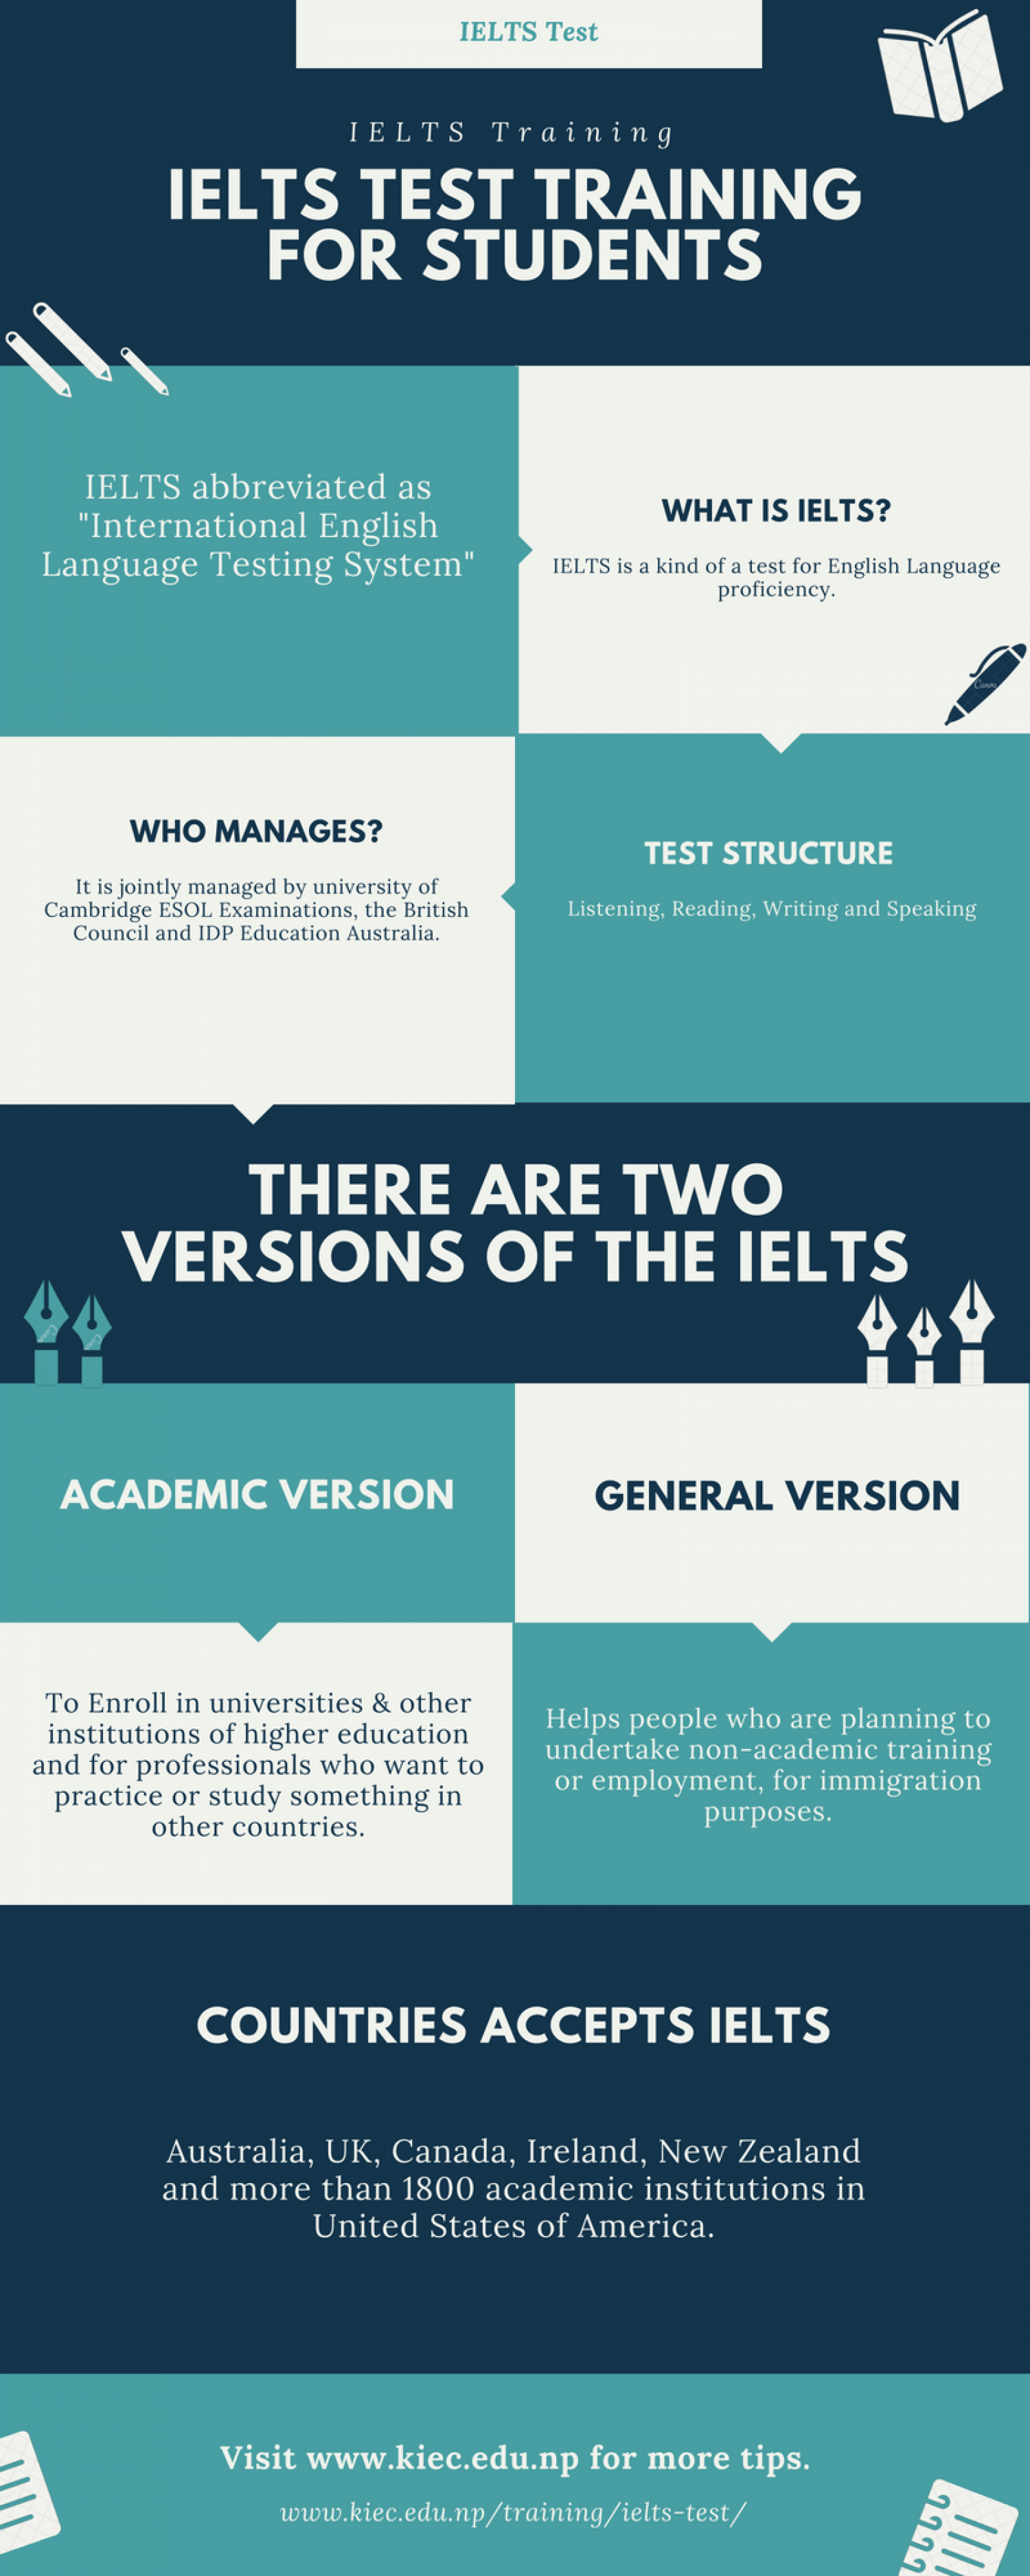 IELTS Test Training Infographic